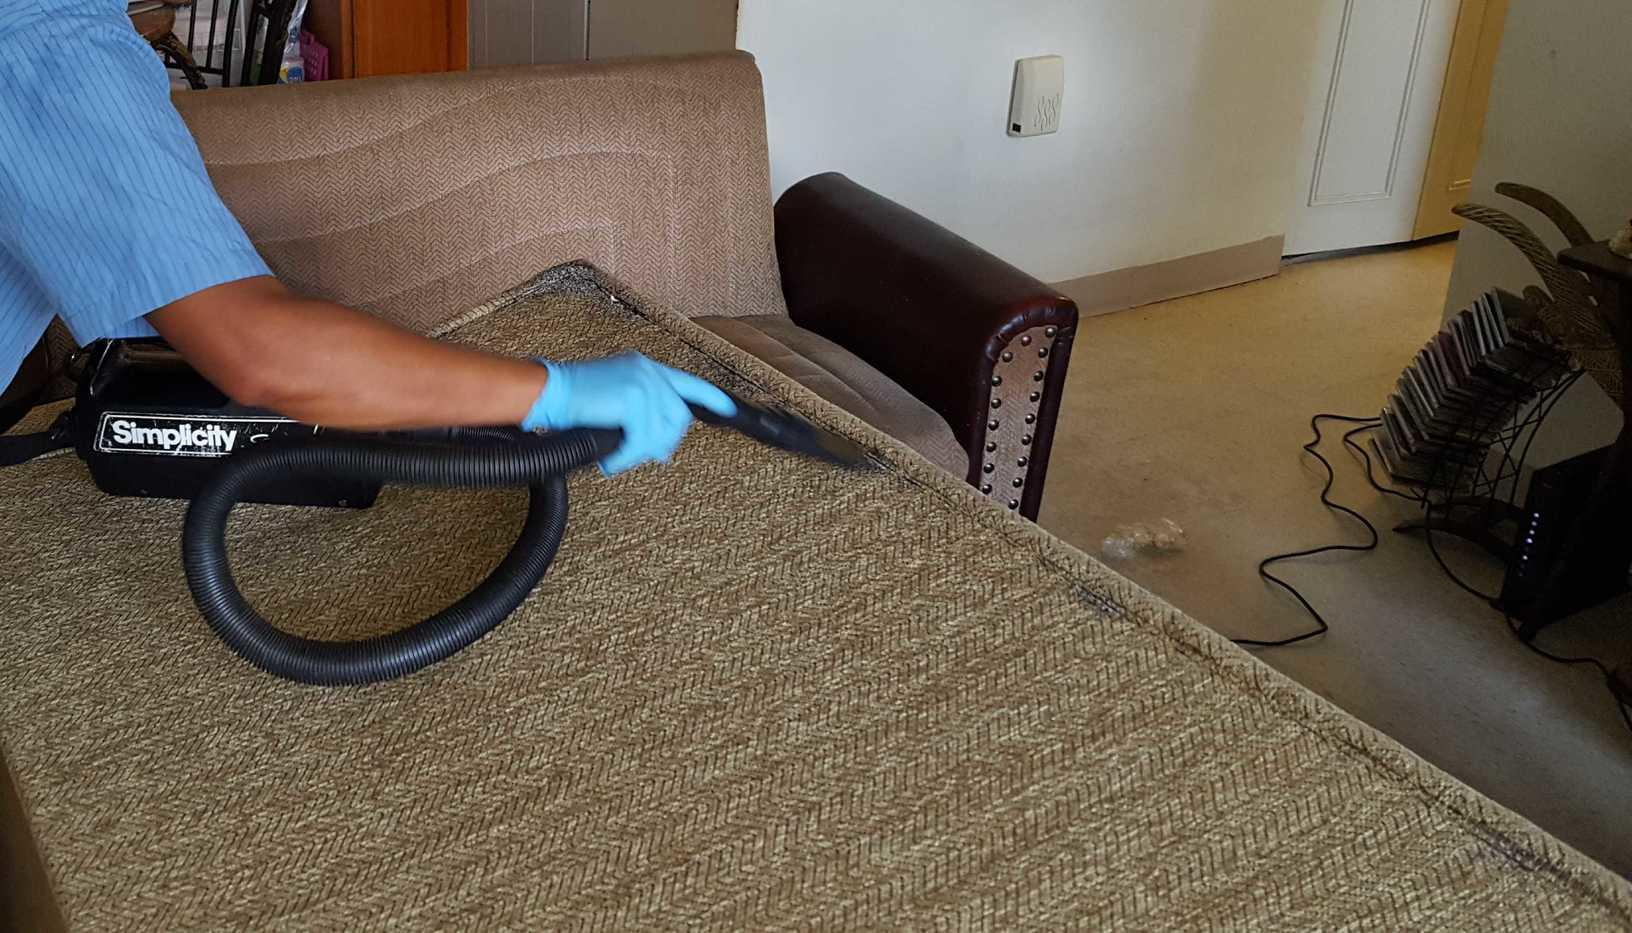 Vacuuming up the bed bugs.